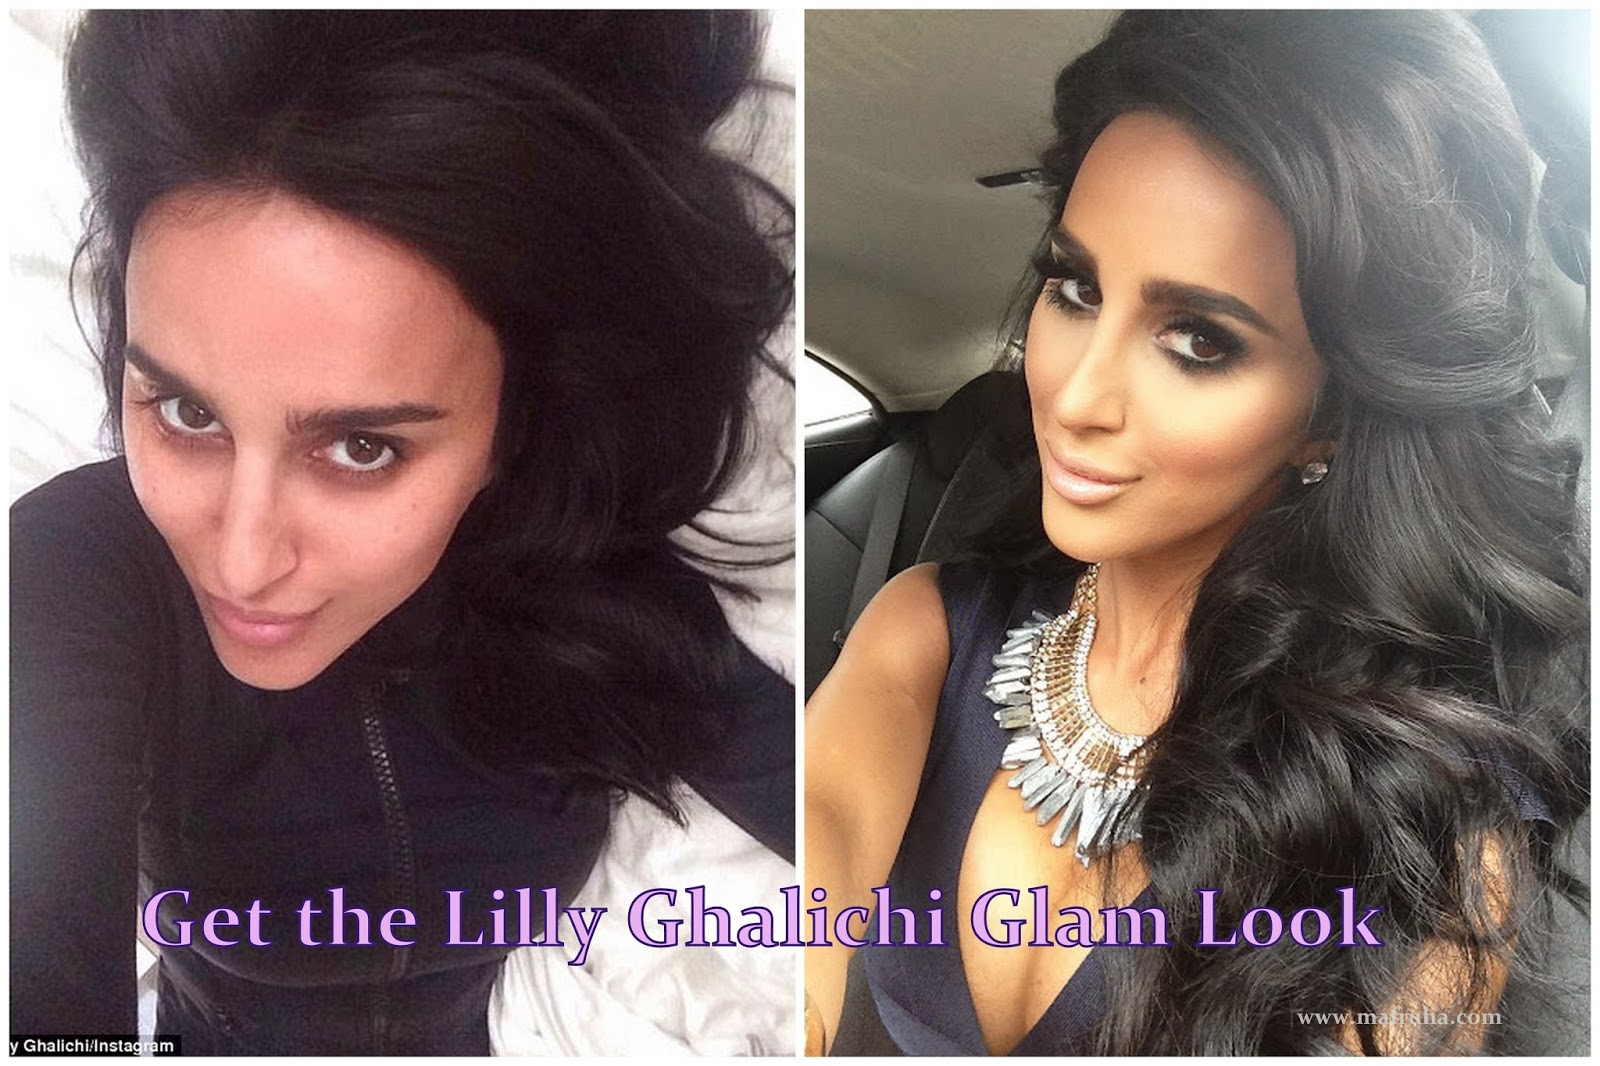 lilly ghalichi plastic surgery photo - 1